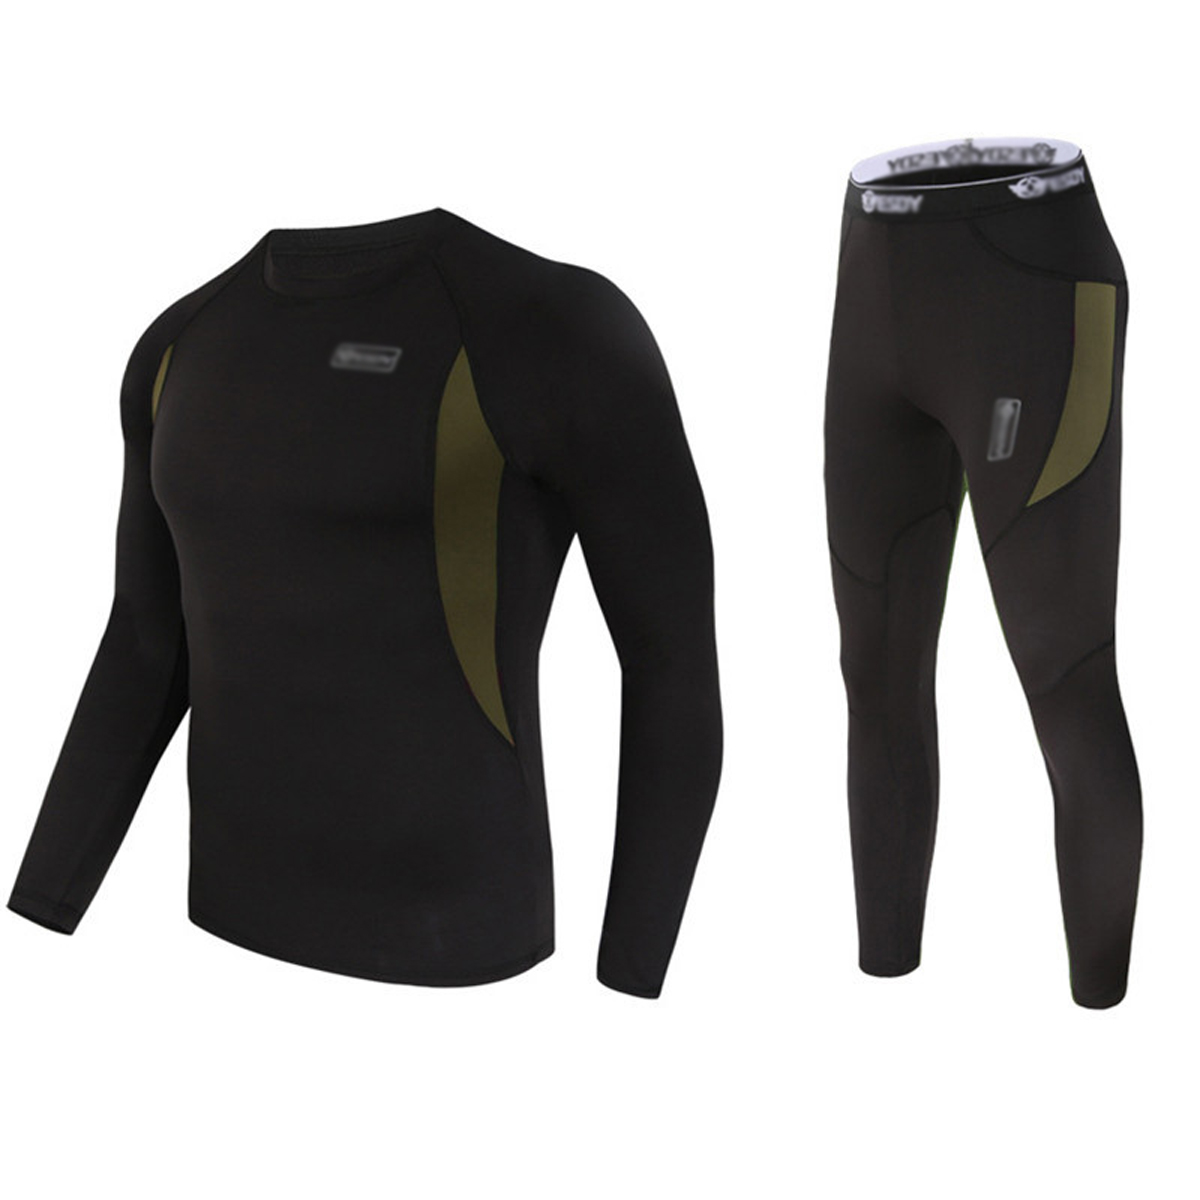 Men's Winter Thermal Underwear Camouflage Set of Long Sleeve Top Long Johns Black-M